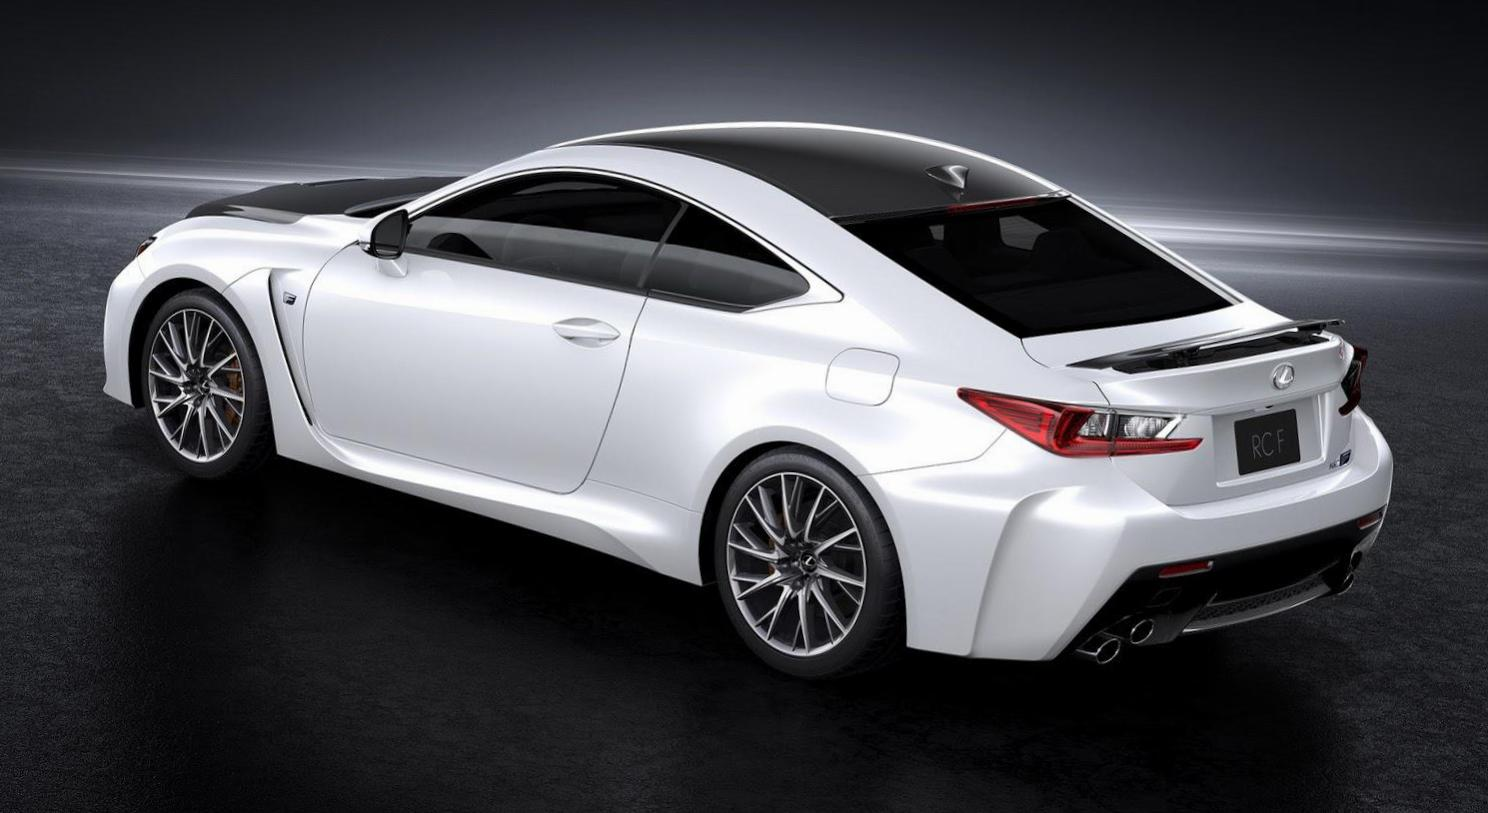 RC F Lexus how mach 2013